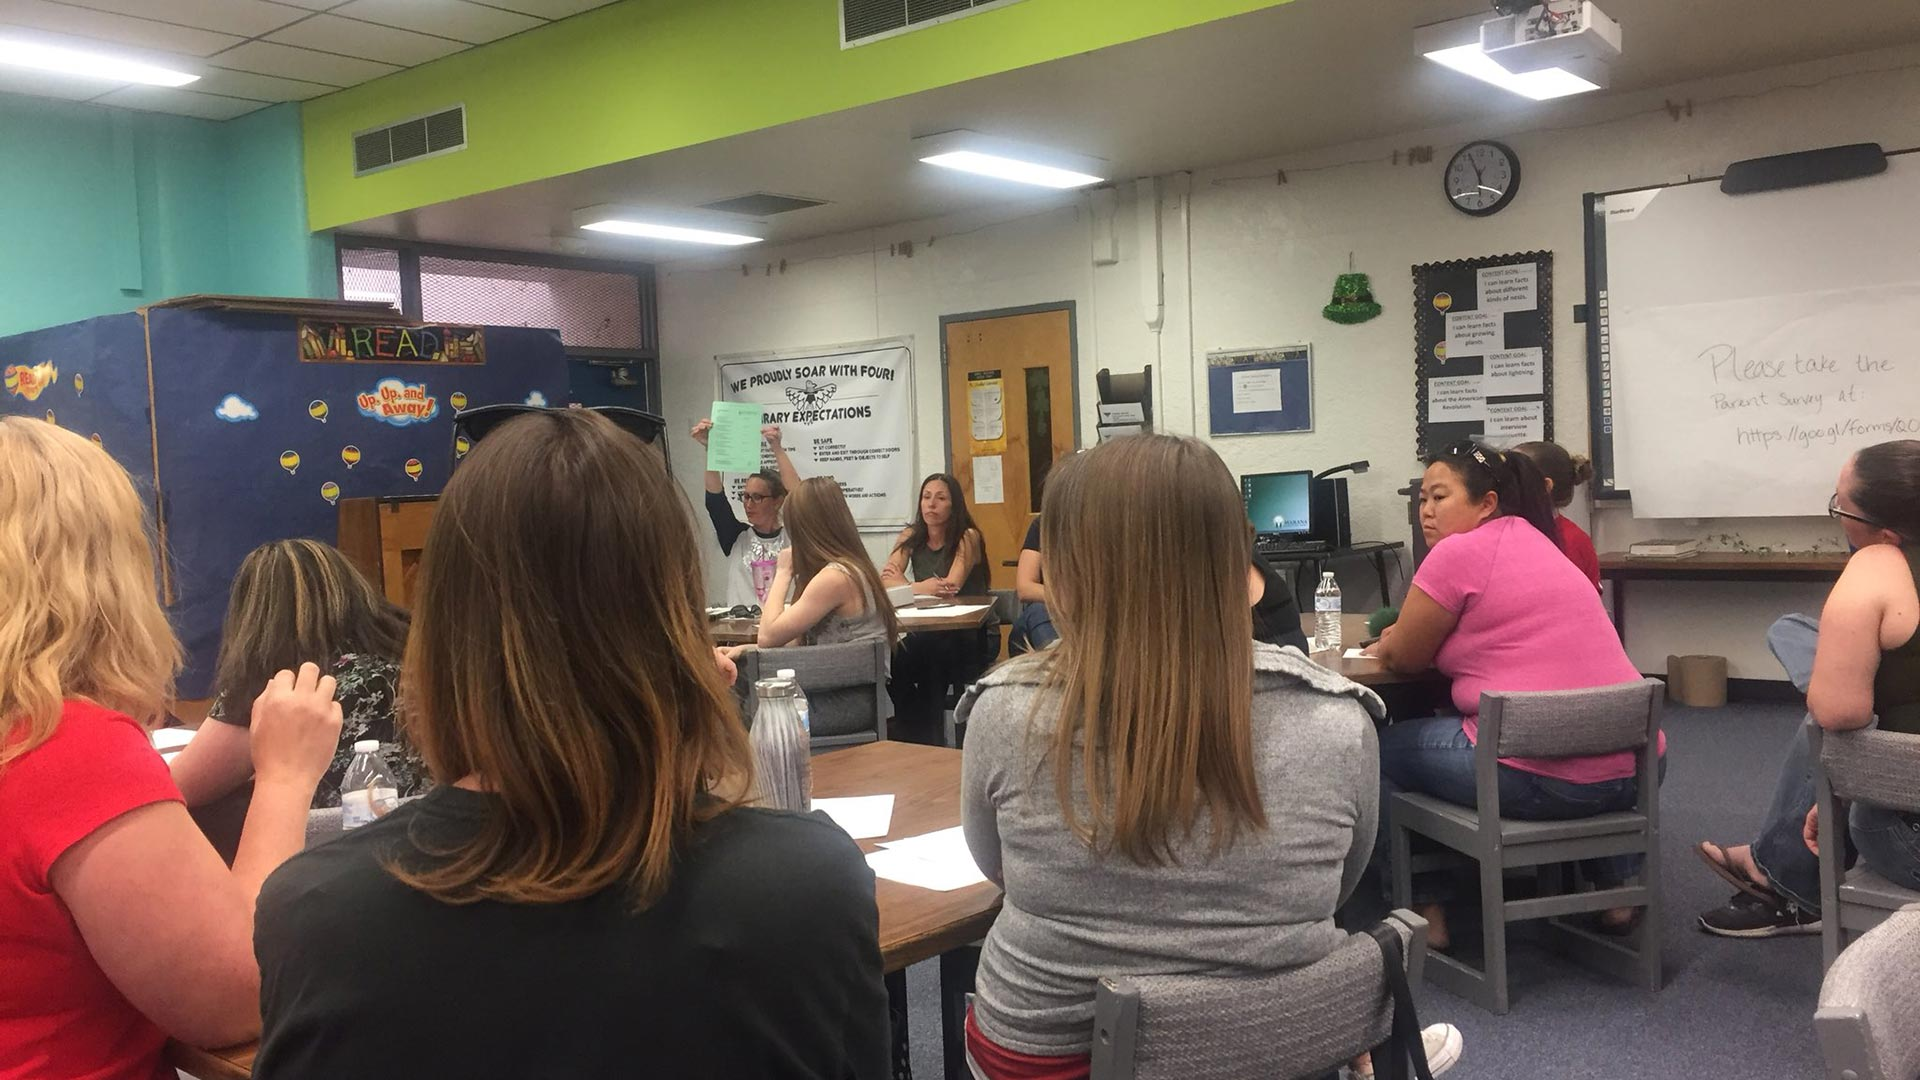 At a March 7 PTO meeting at Thornydale Elementary, parents discuss what they can do after finding out Marana Unified School District may opt to close the school.